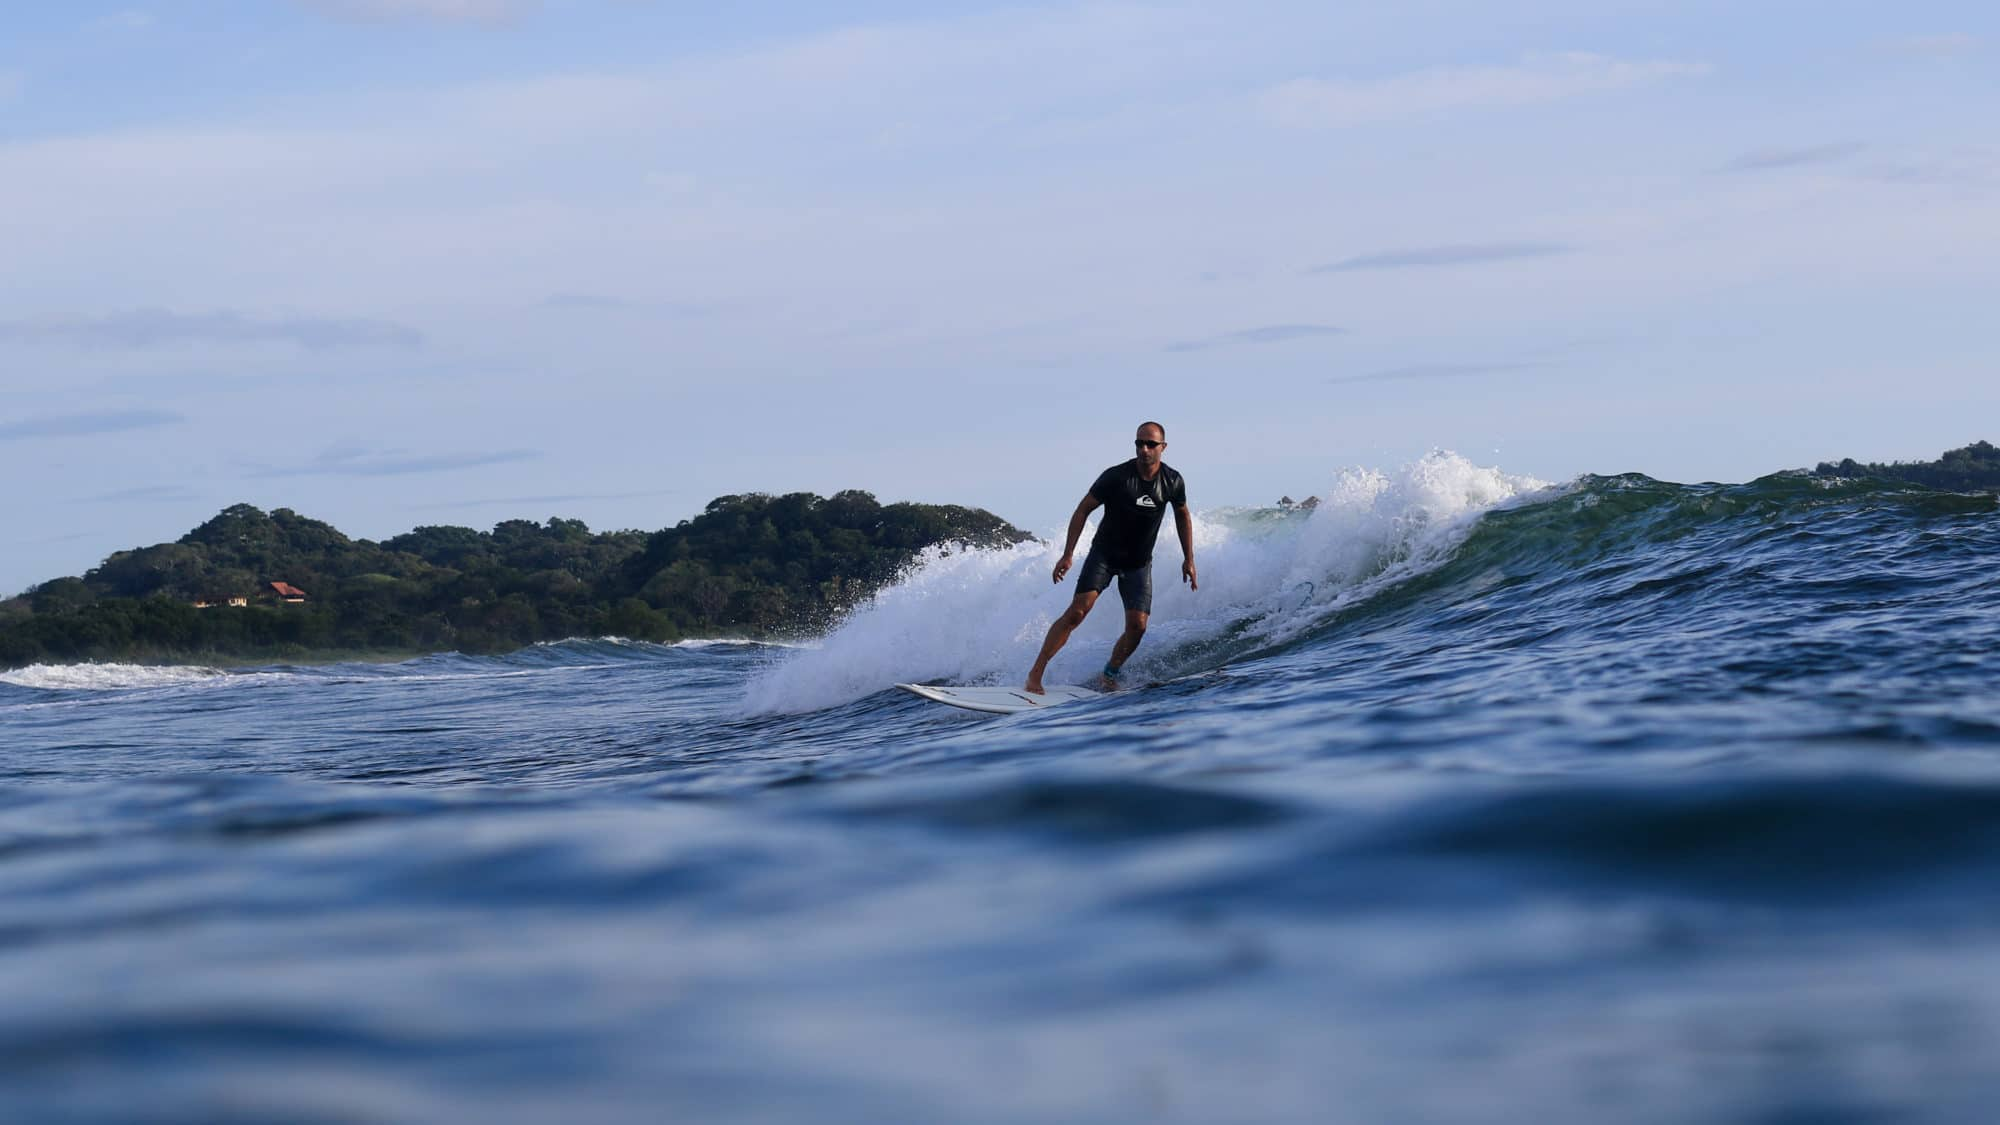 Shawn enjoying a sunset surf session in Costa Rica